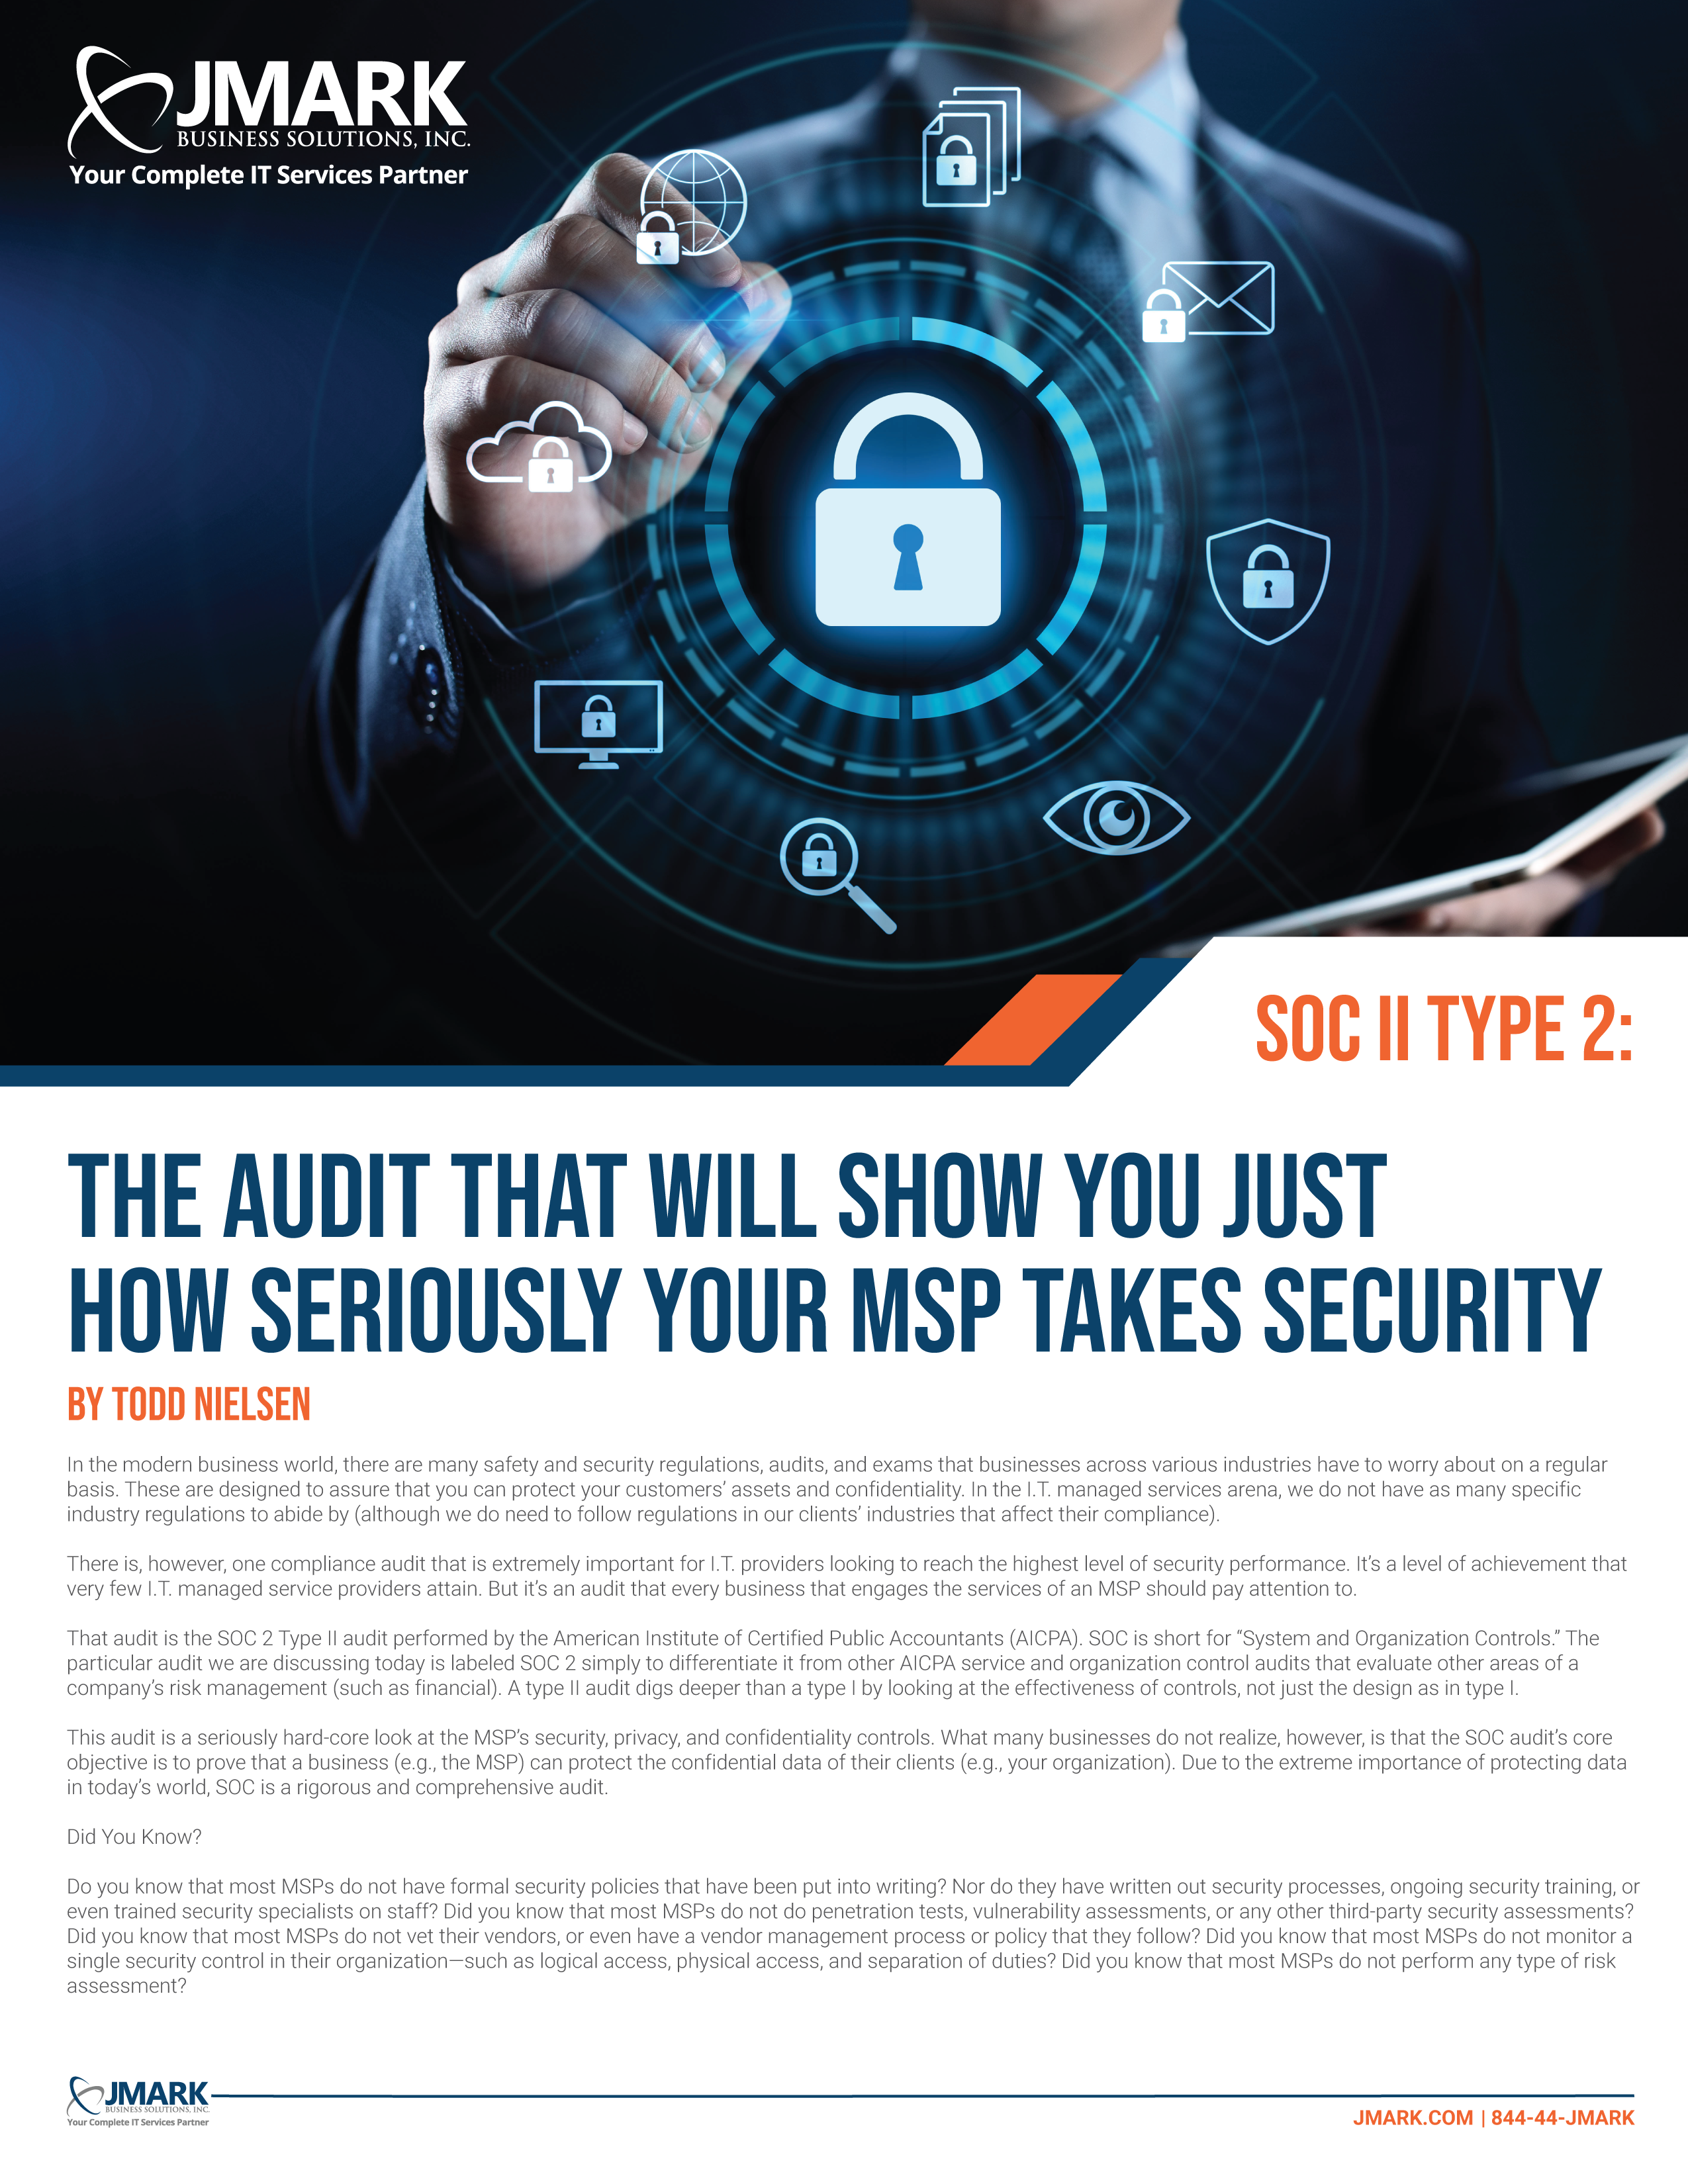 SOC II Type 2: The Audit That Will Show You Just How Seriously Your MSP Takes Security